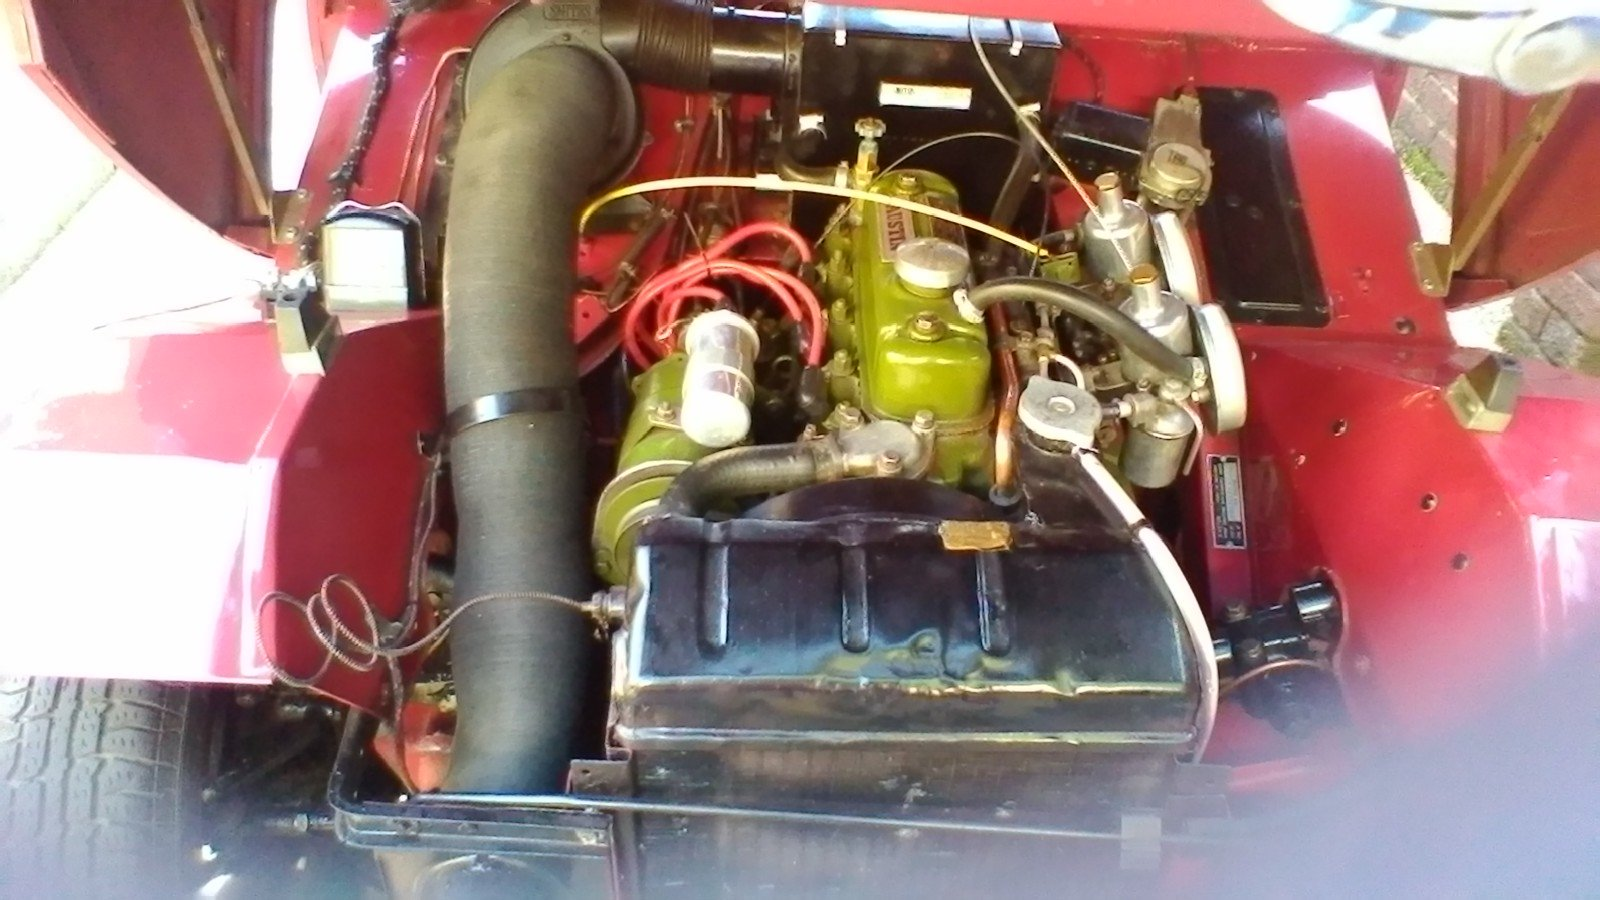 1959 Austin Healey Frogeye Sprite SOLD (picture 3 of 5)